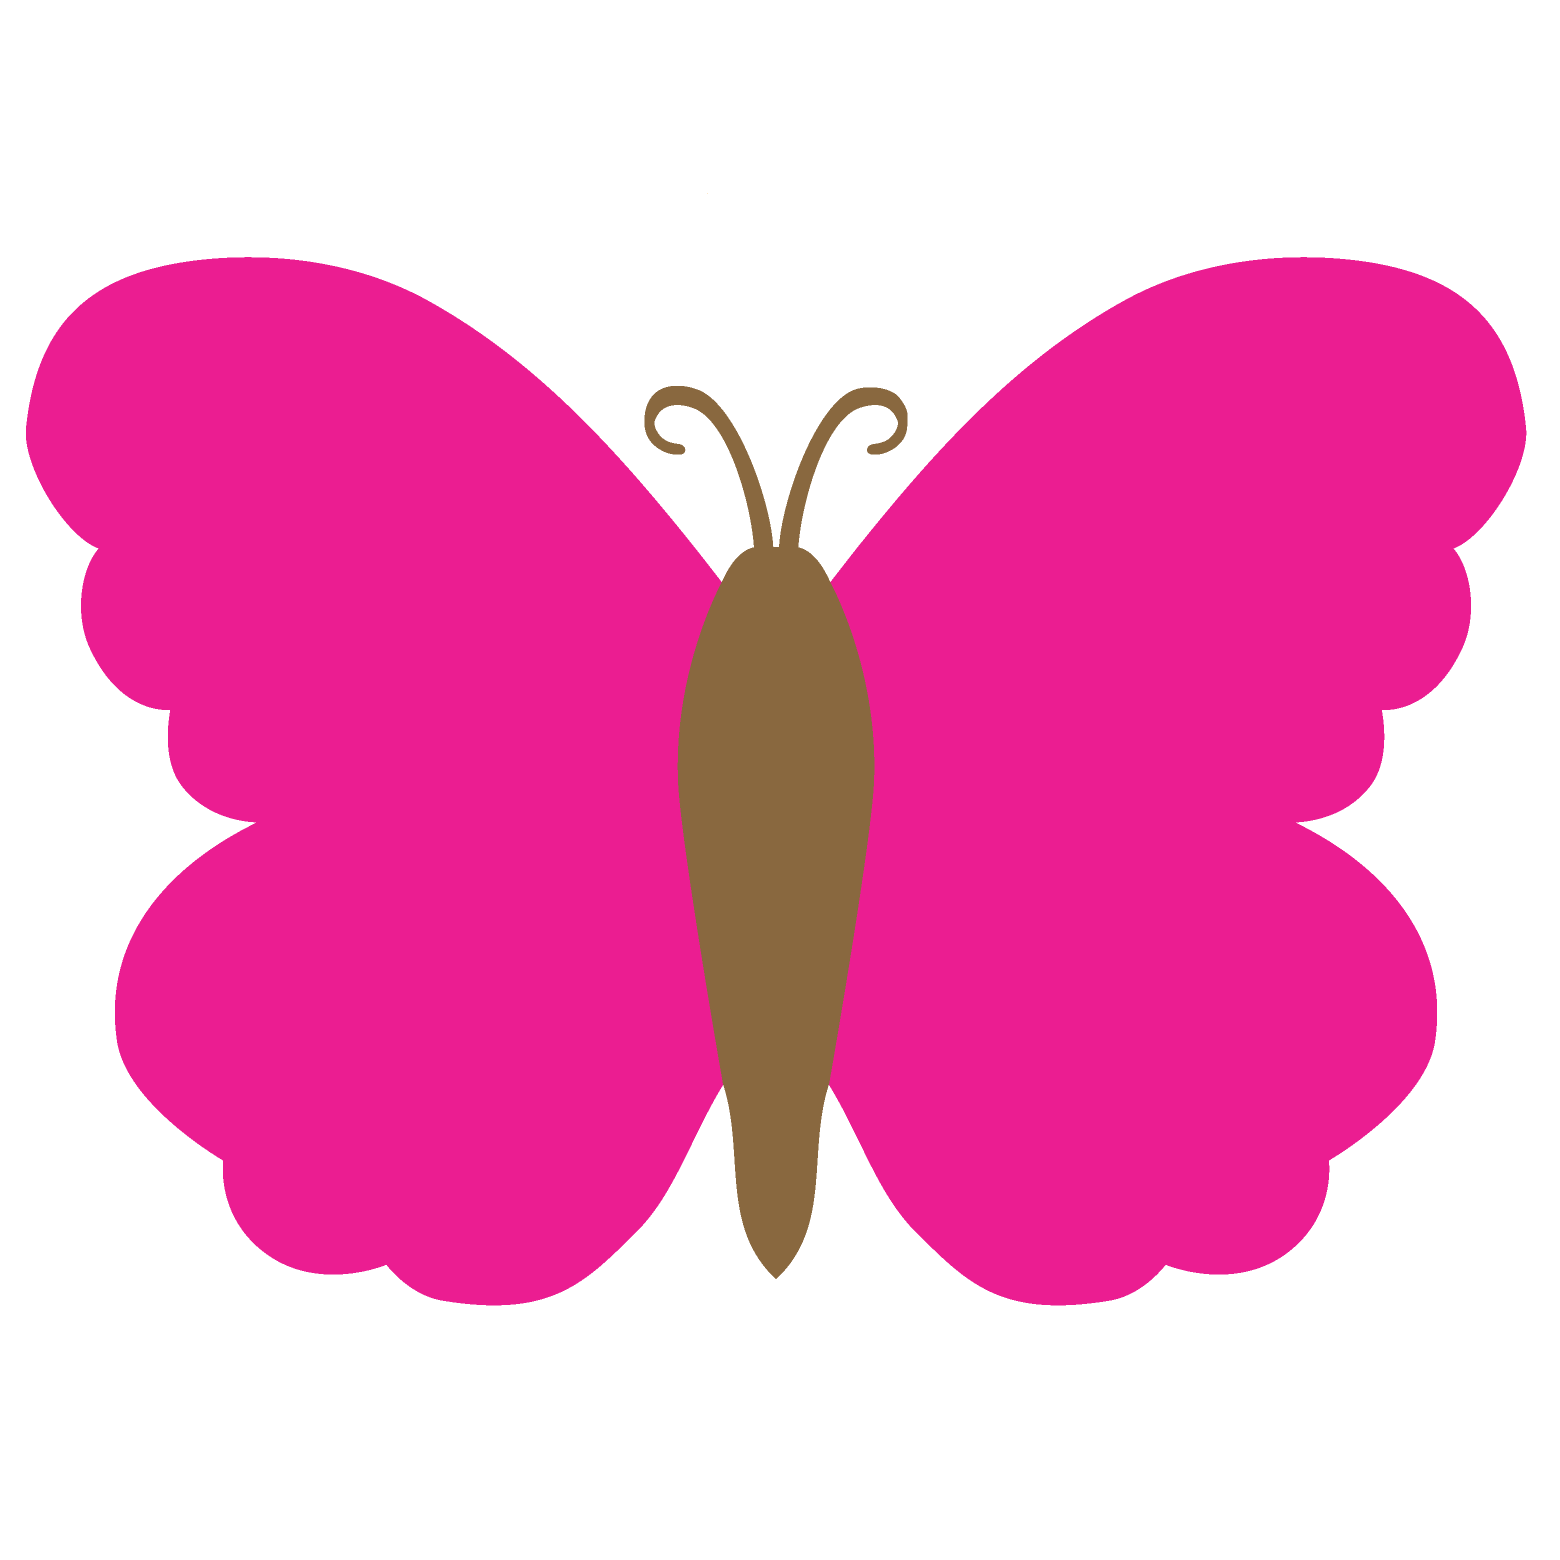 hight resolution of 1560x1560 butterfly clipart solid